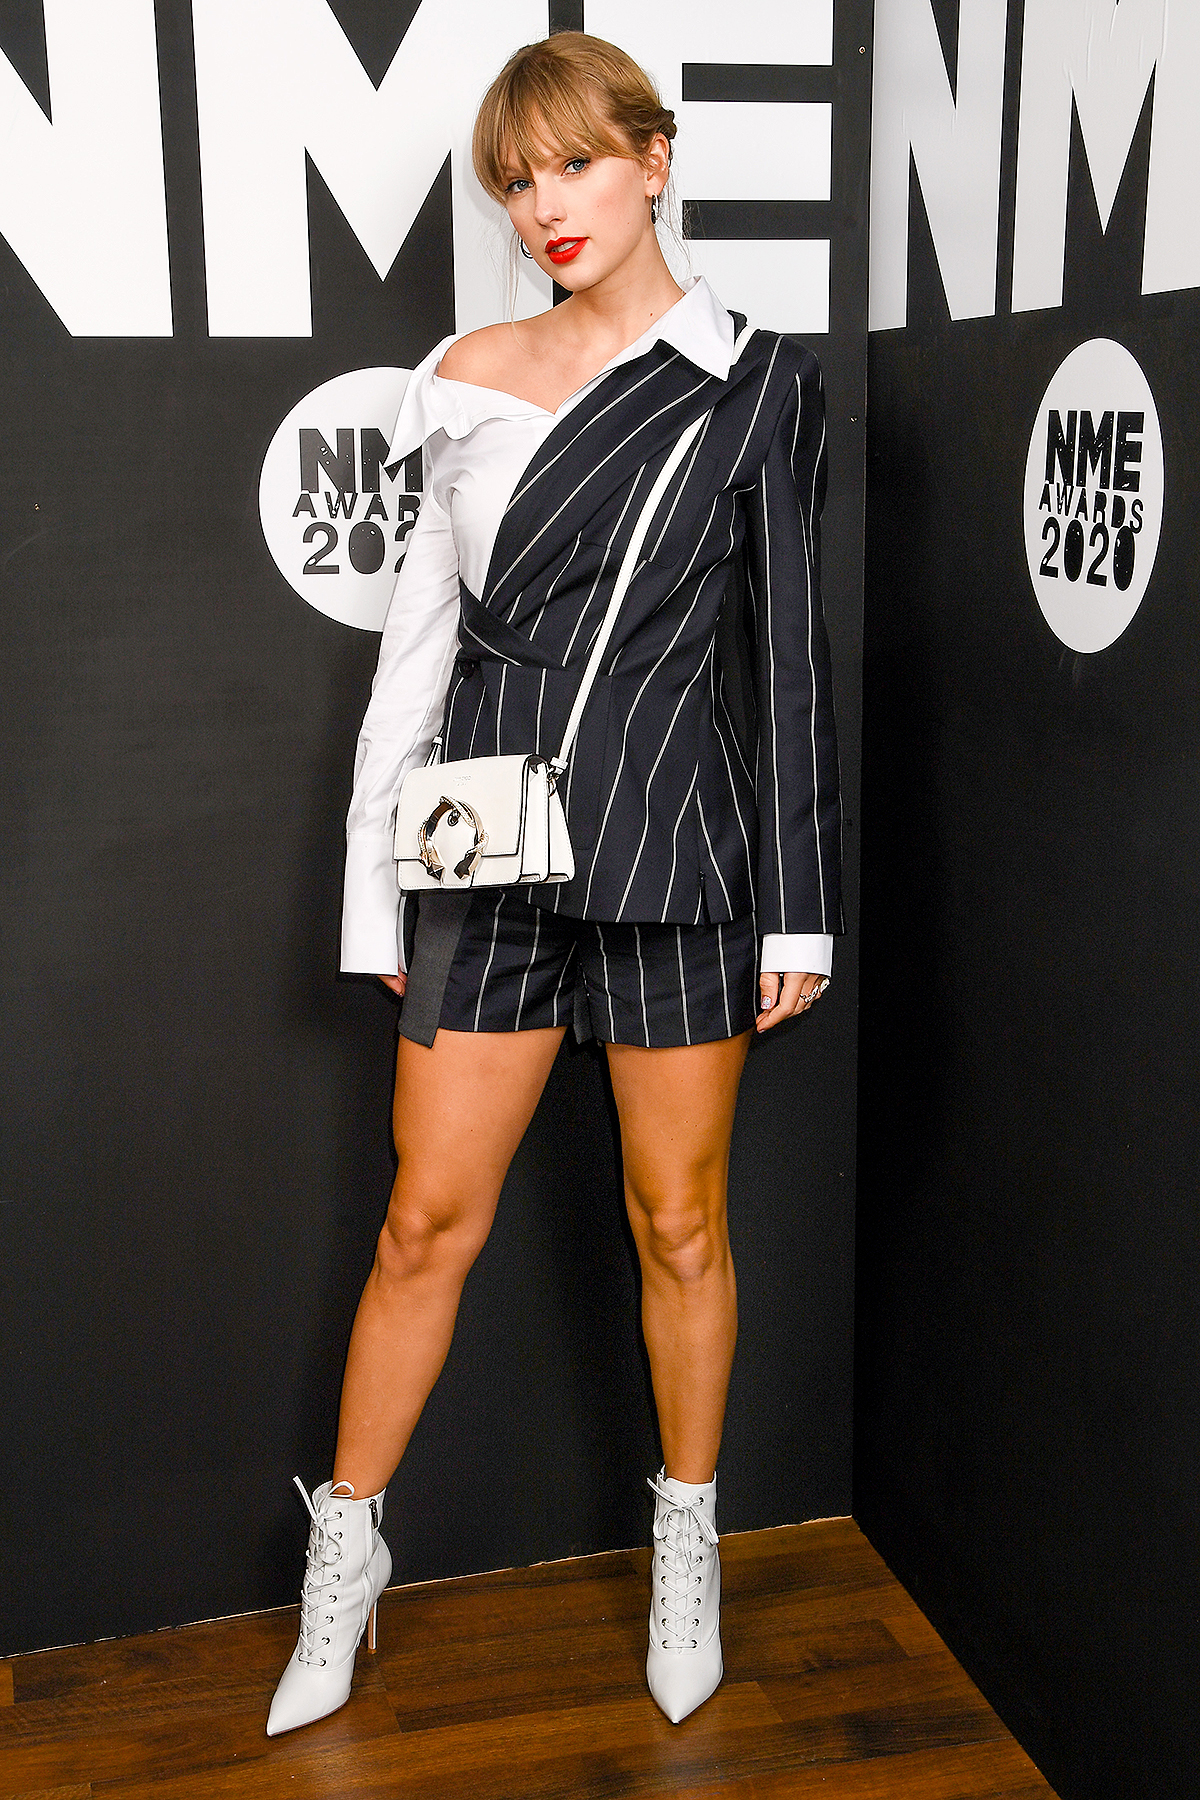 Taylor Swift attends the NME Awards 2020 at O2 Academy Brixton on February 12, 2020